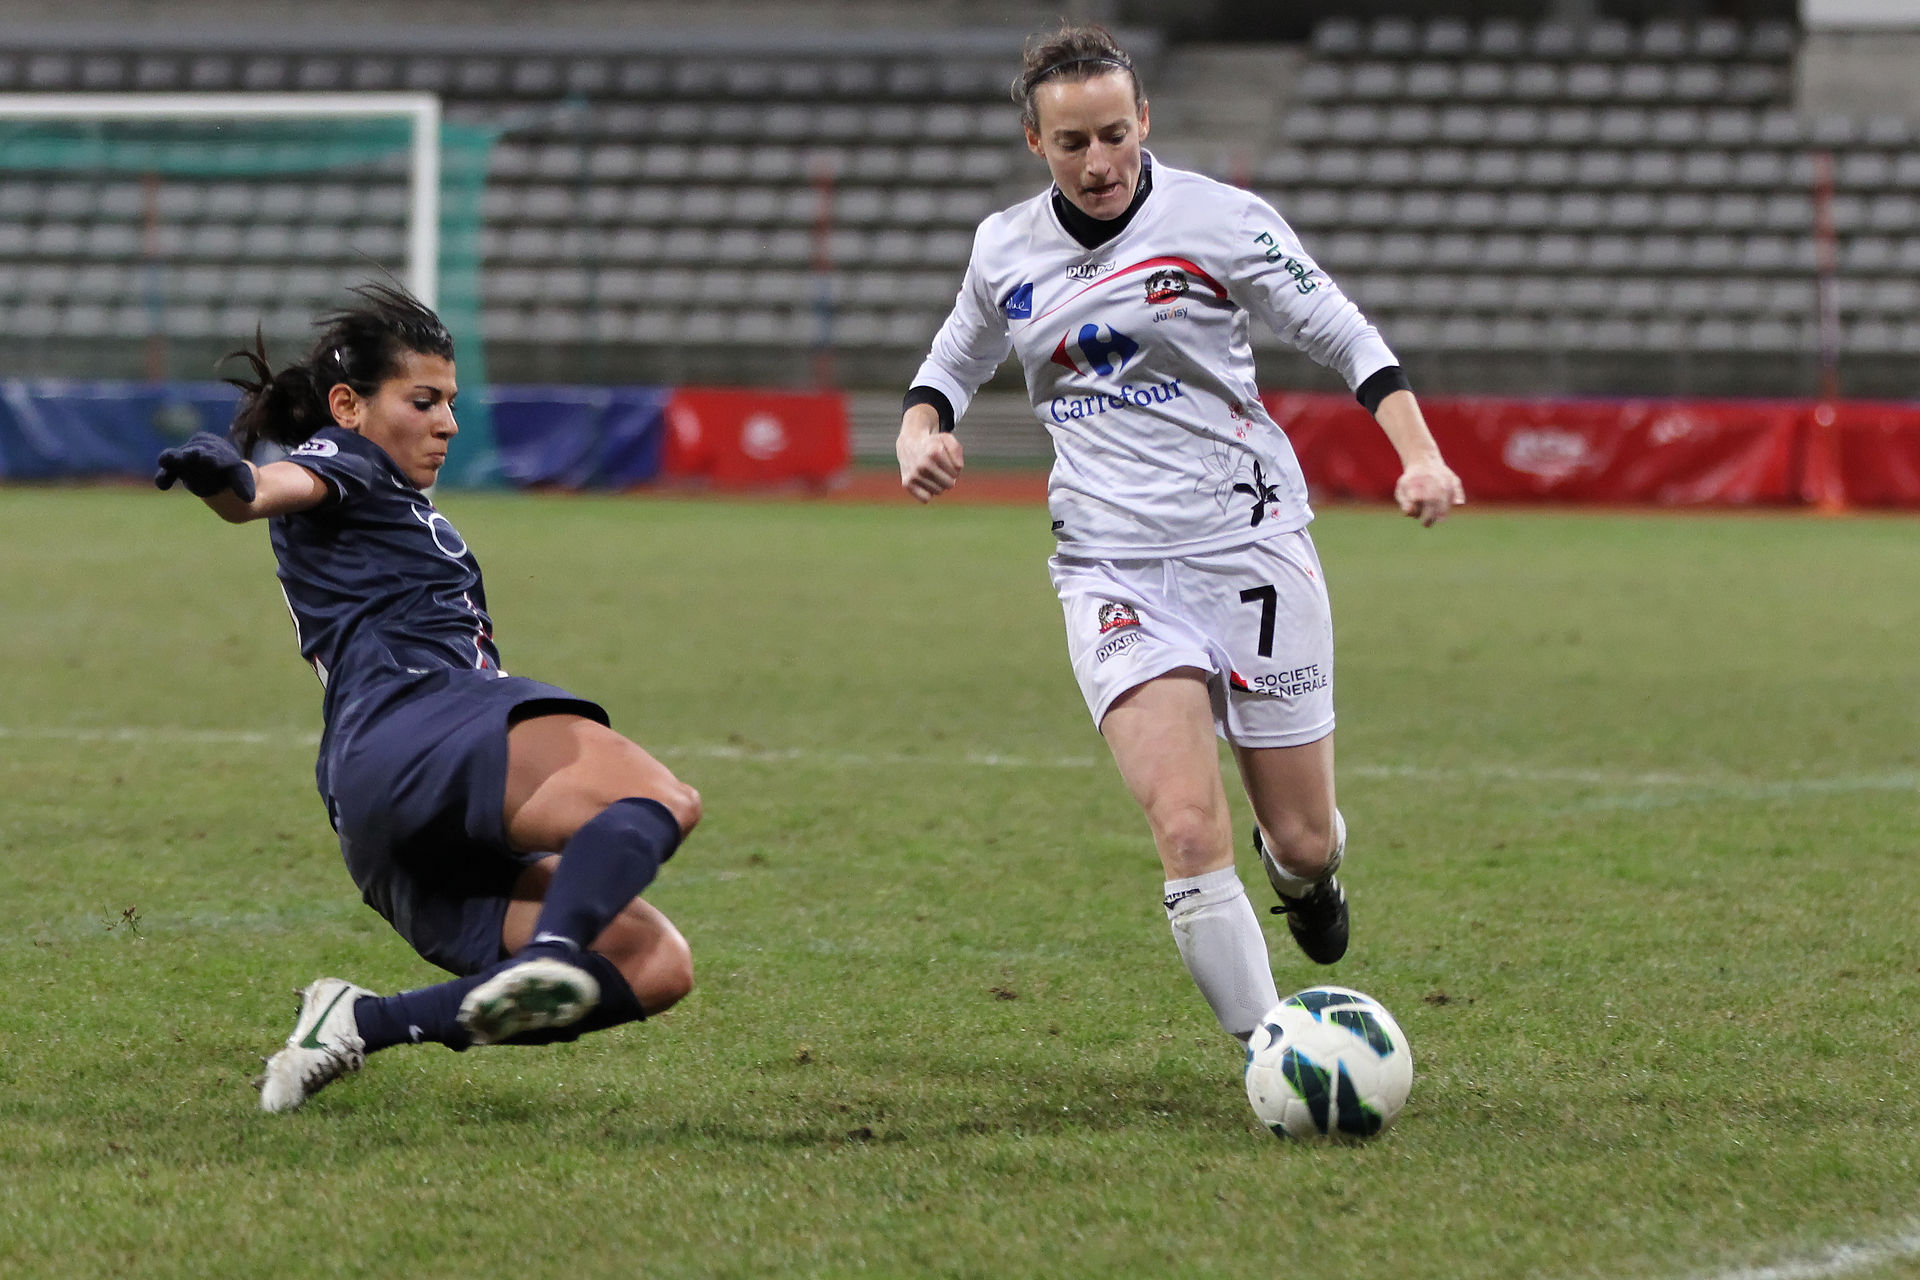 Image Result For Football Joueur Libre